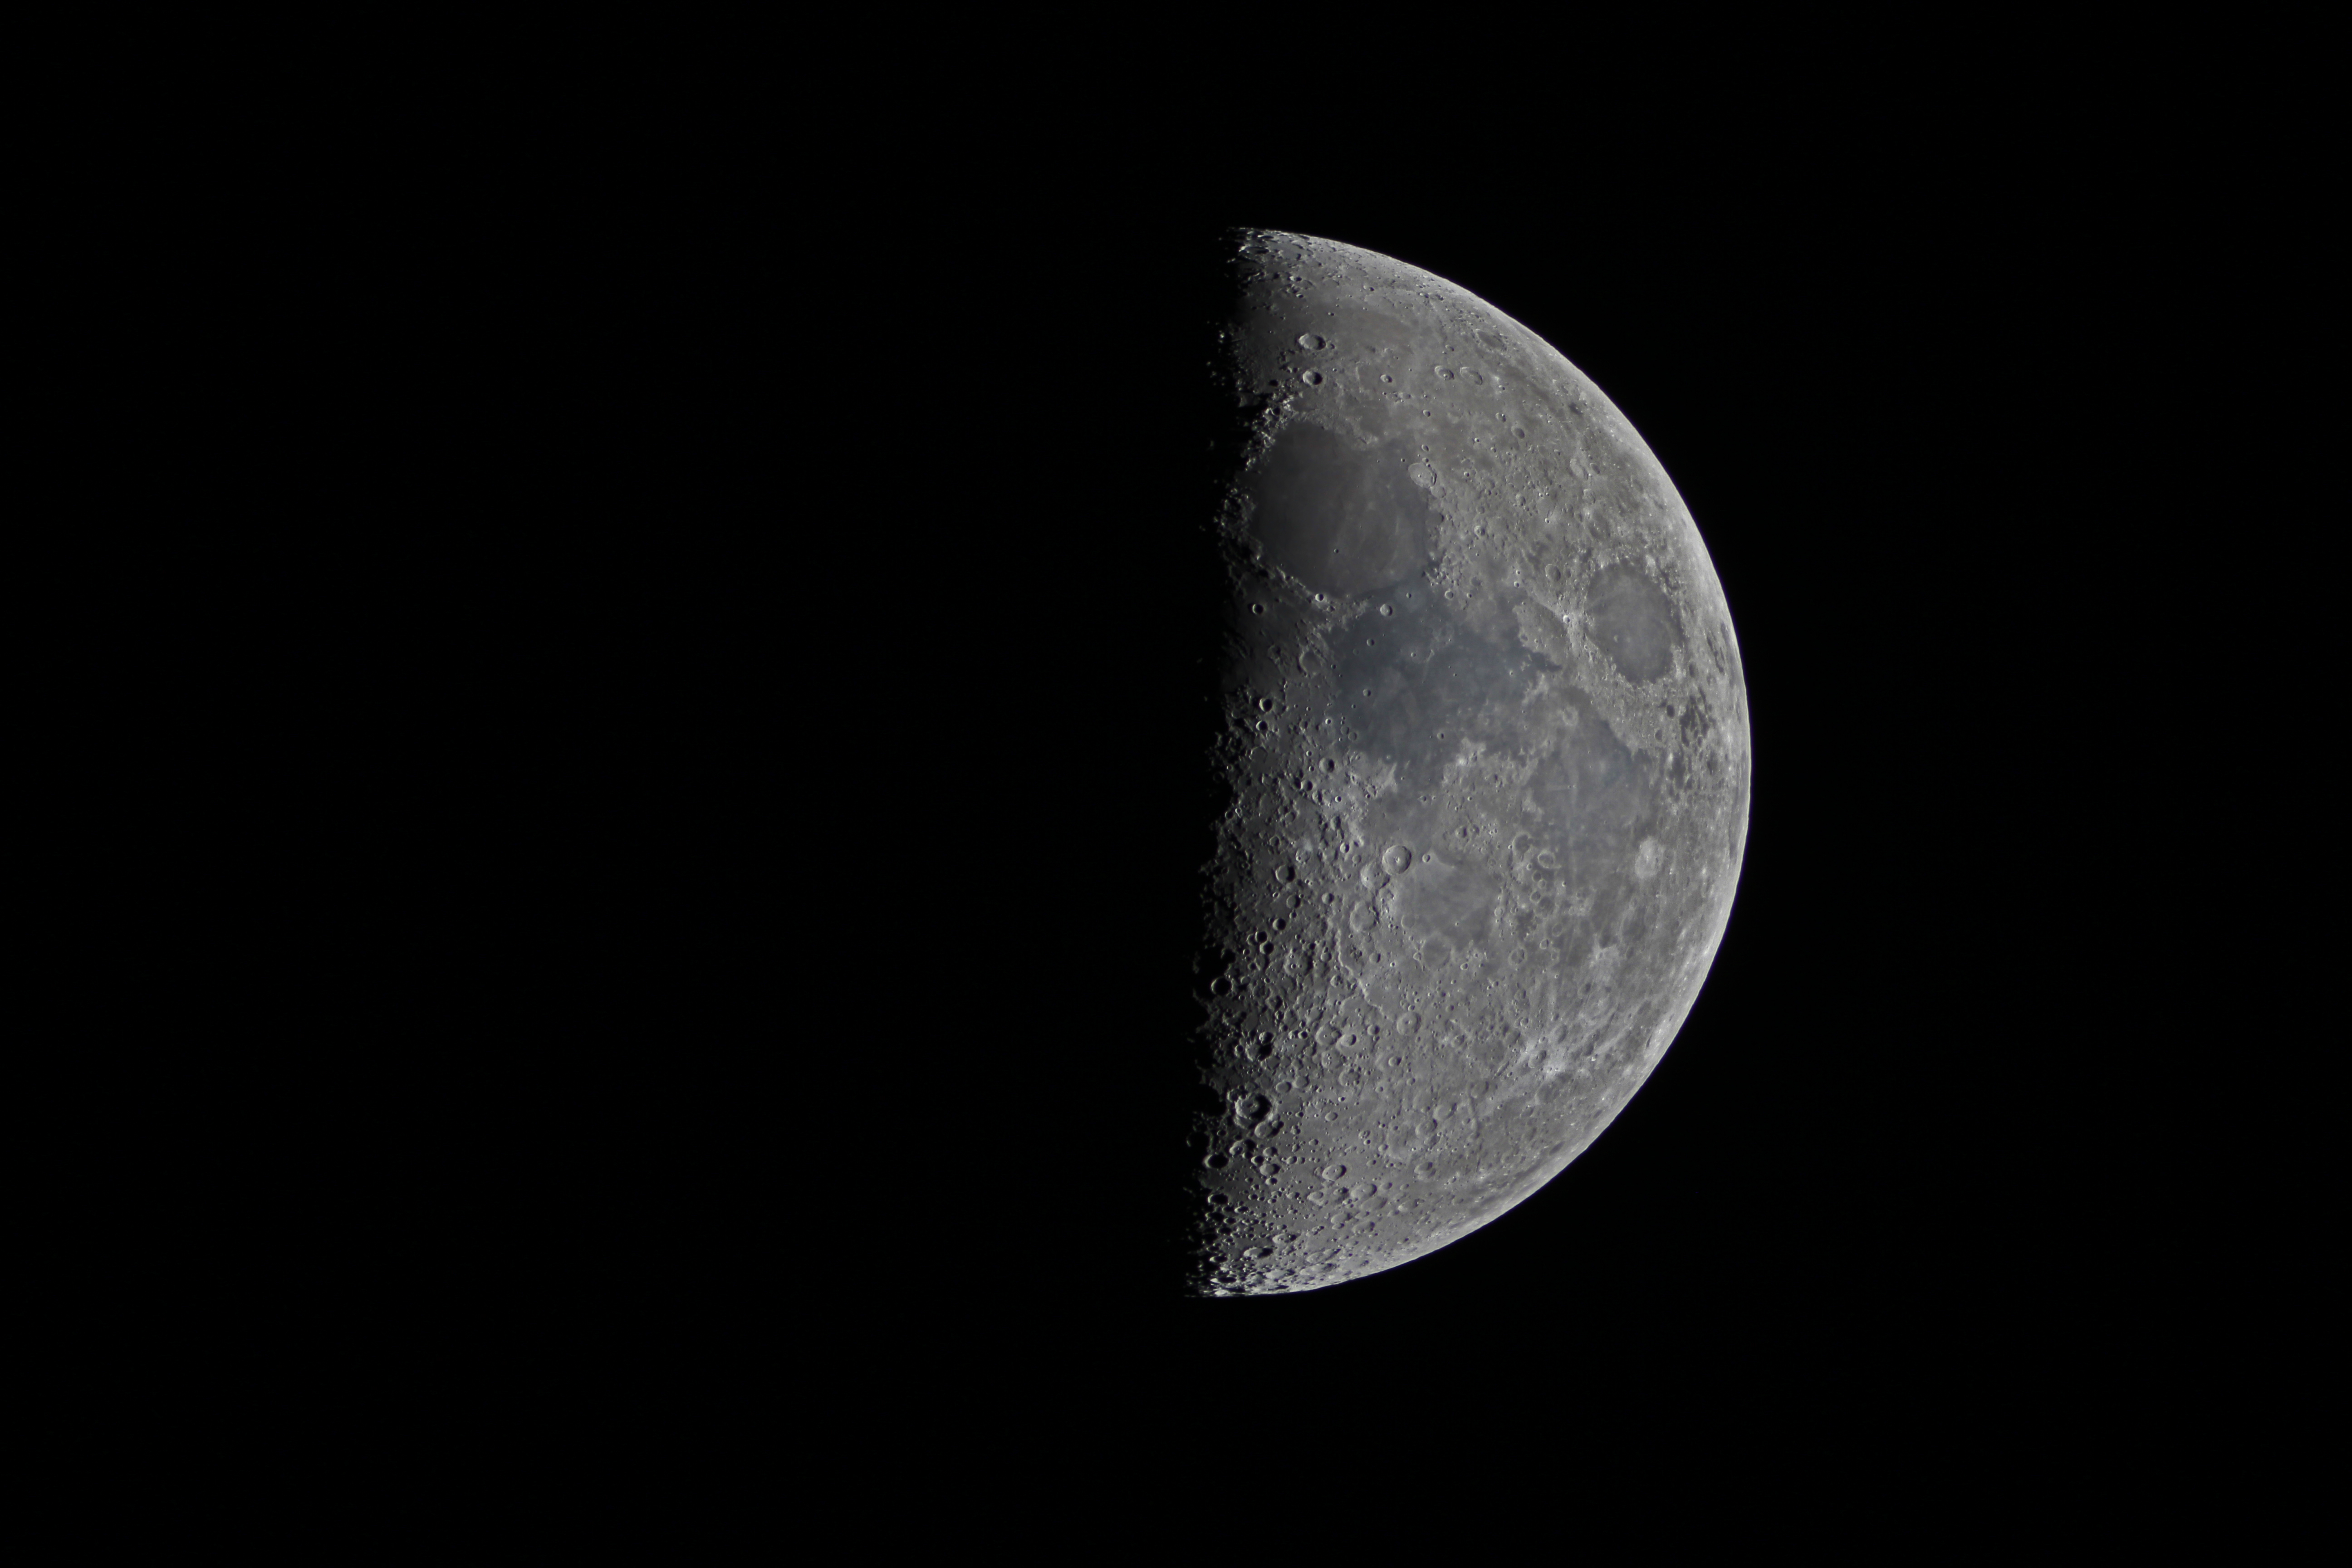 First Quarter Moon Plus 2 Seconds